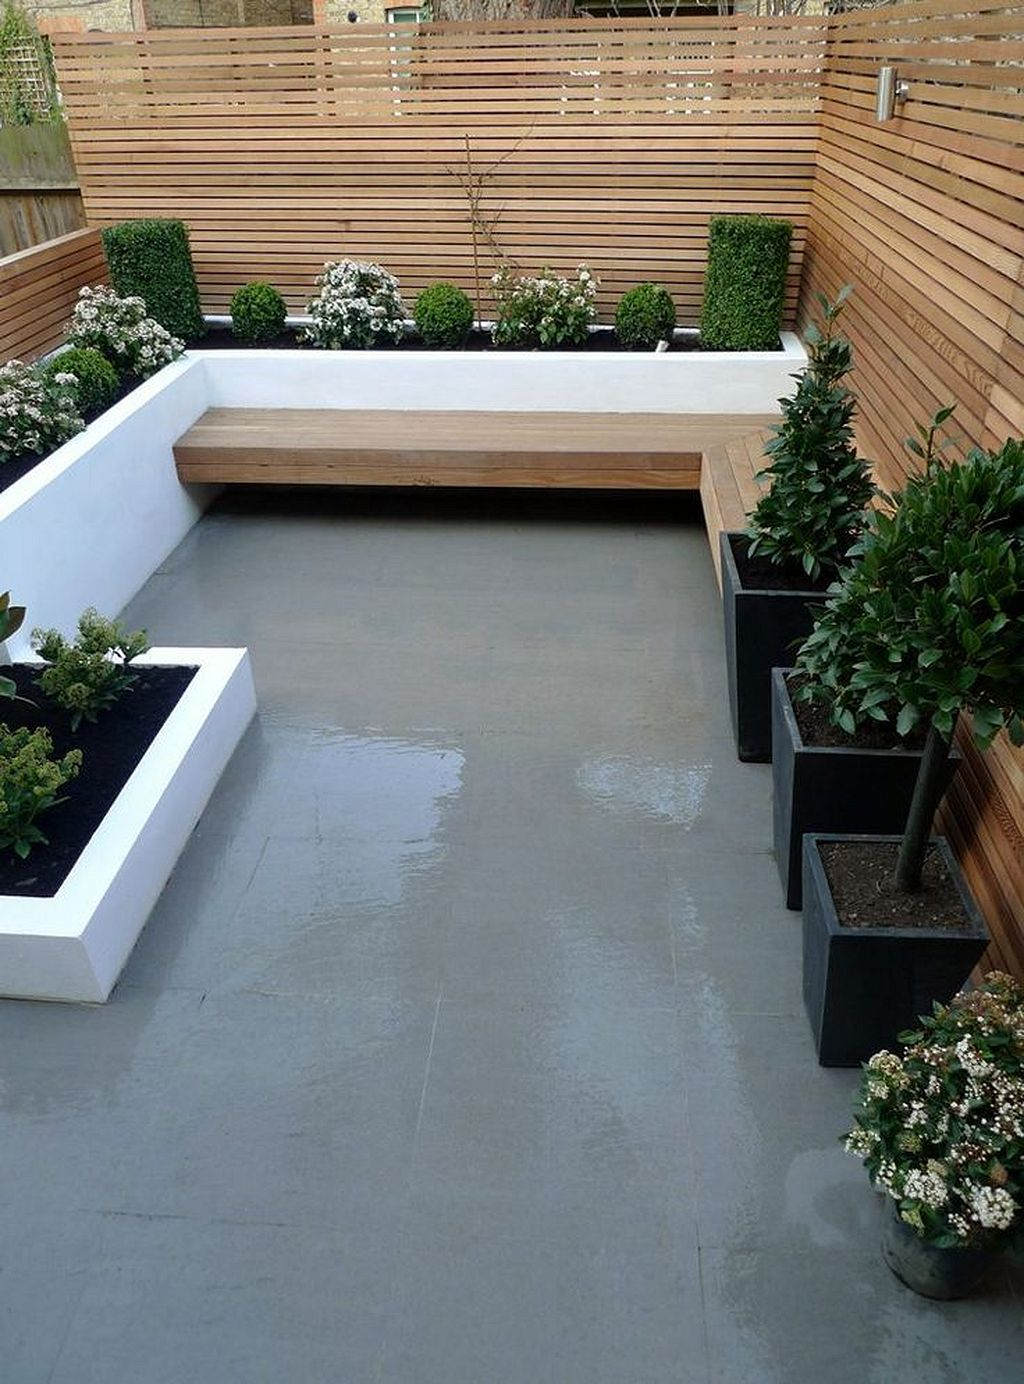 50 Modern Urban Garden Design Ideas To Try In 2018 Small Garden